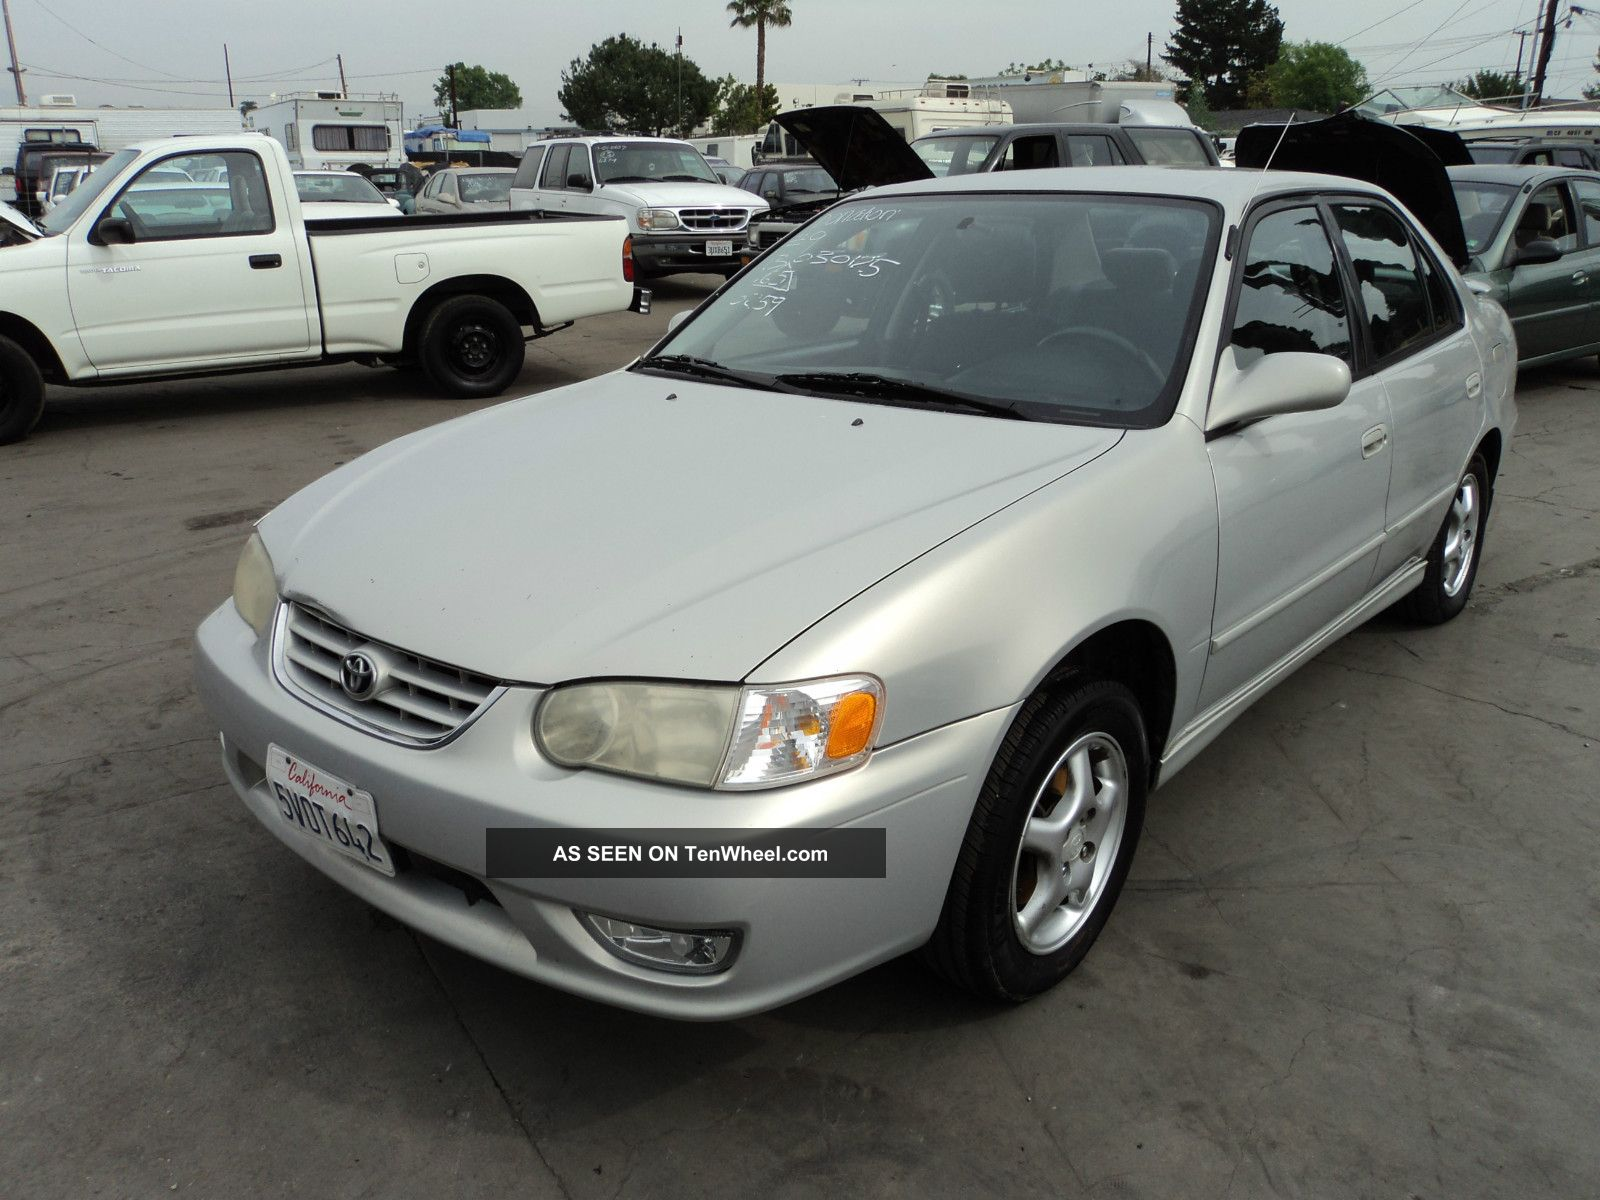 2001 Toyota Corolla S Sedan 4 - Door 1.  8l, Corolla photo